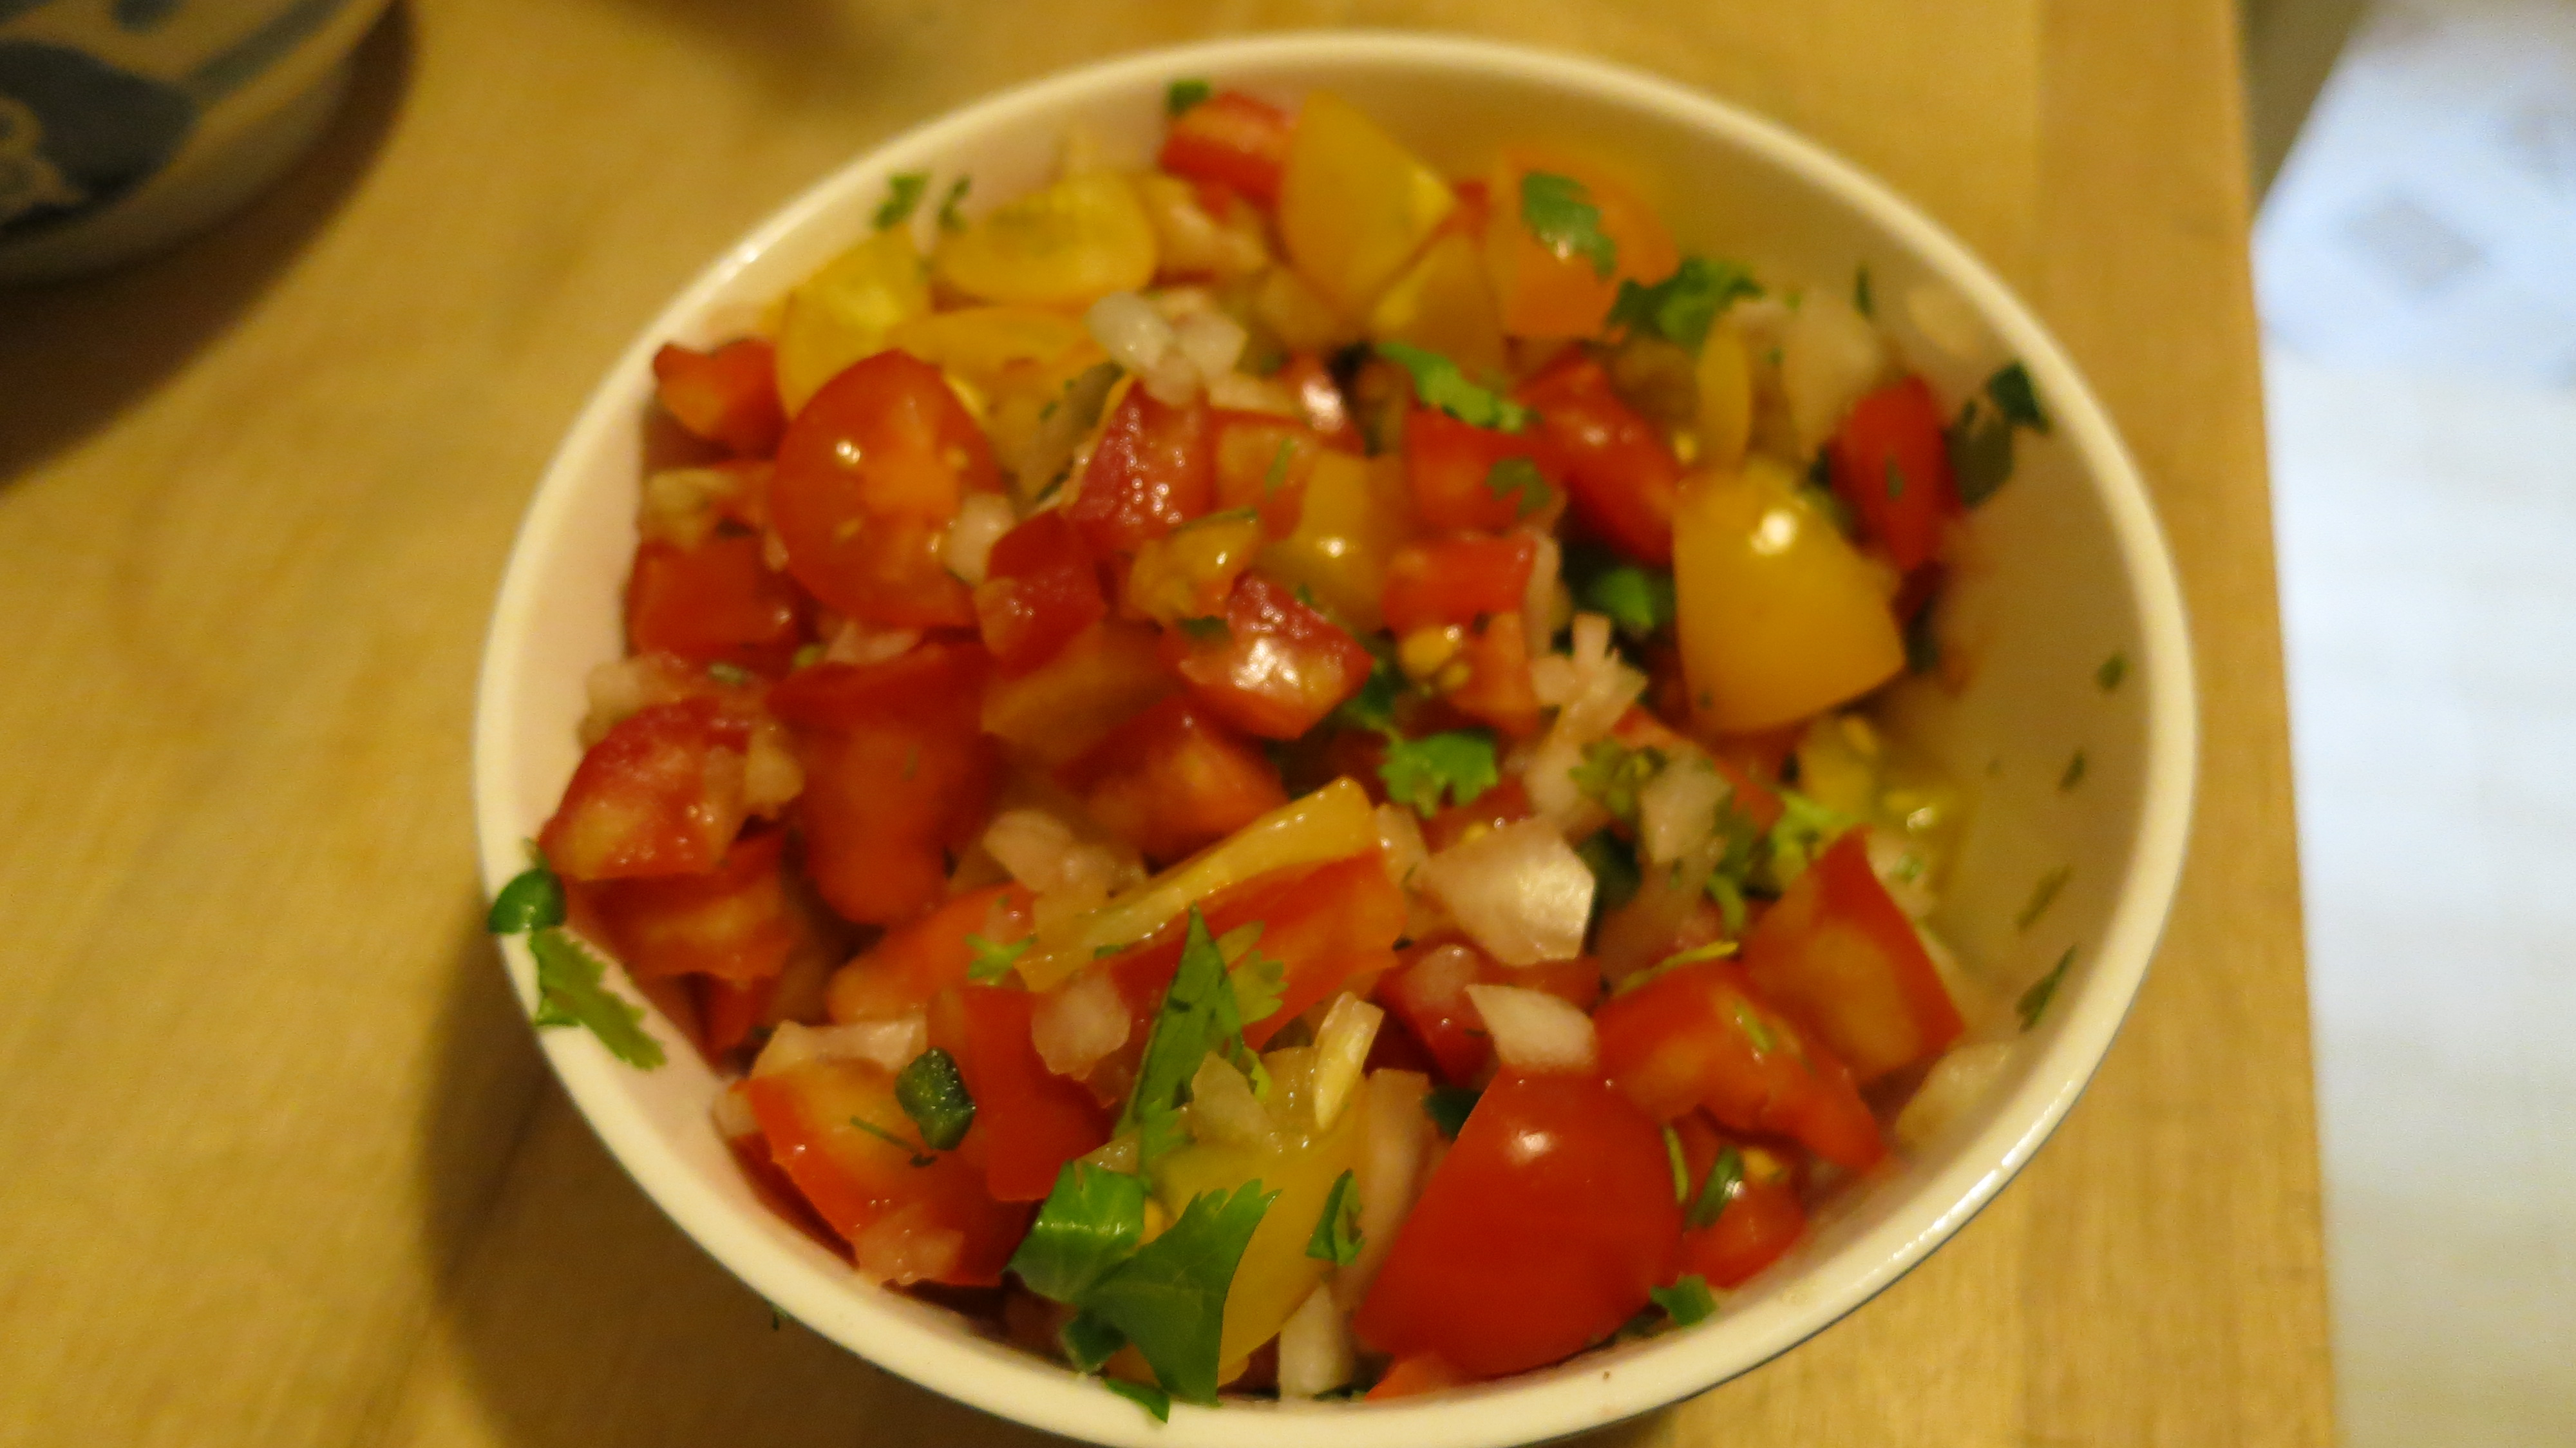 Pico de Gallo with heirloom tomatoes and yellow cherry tomatoes